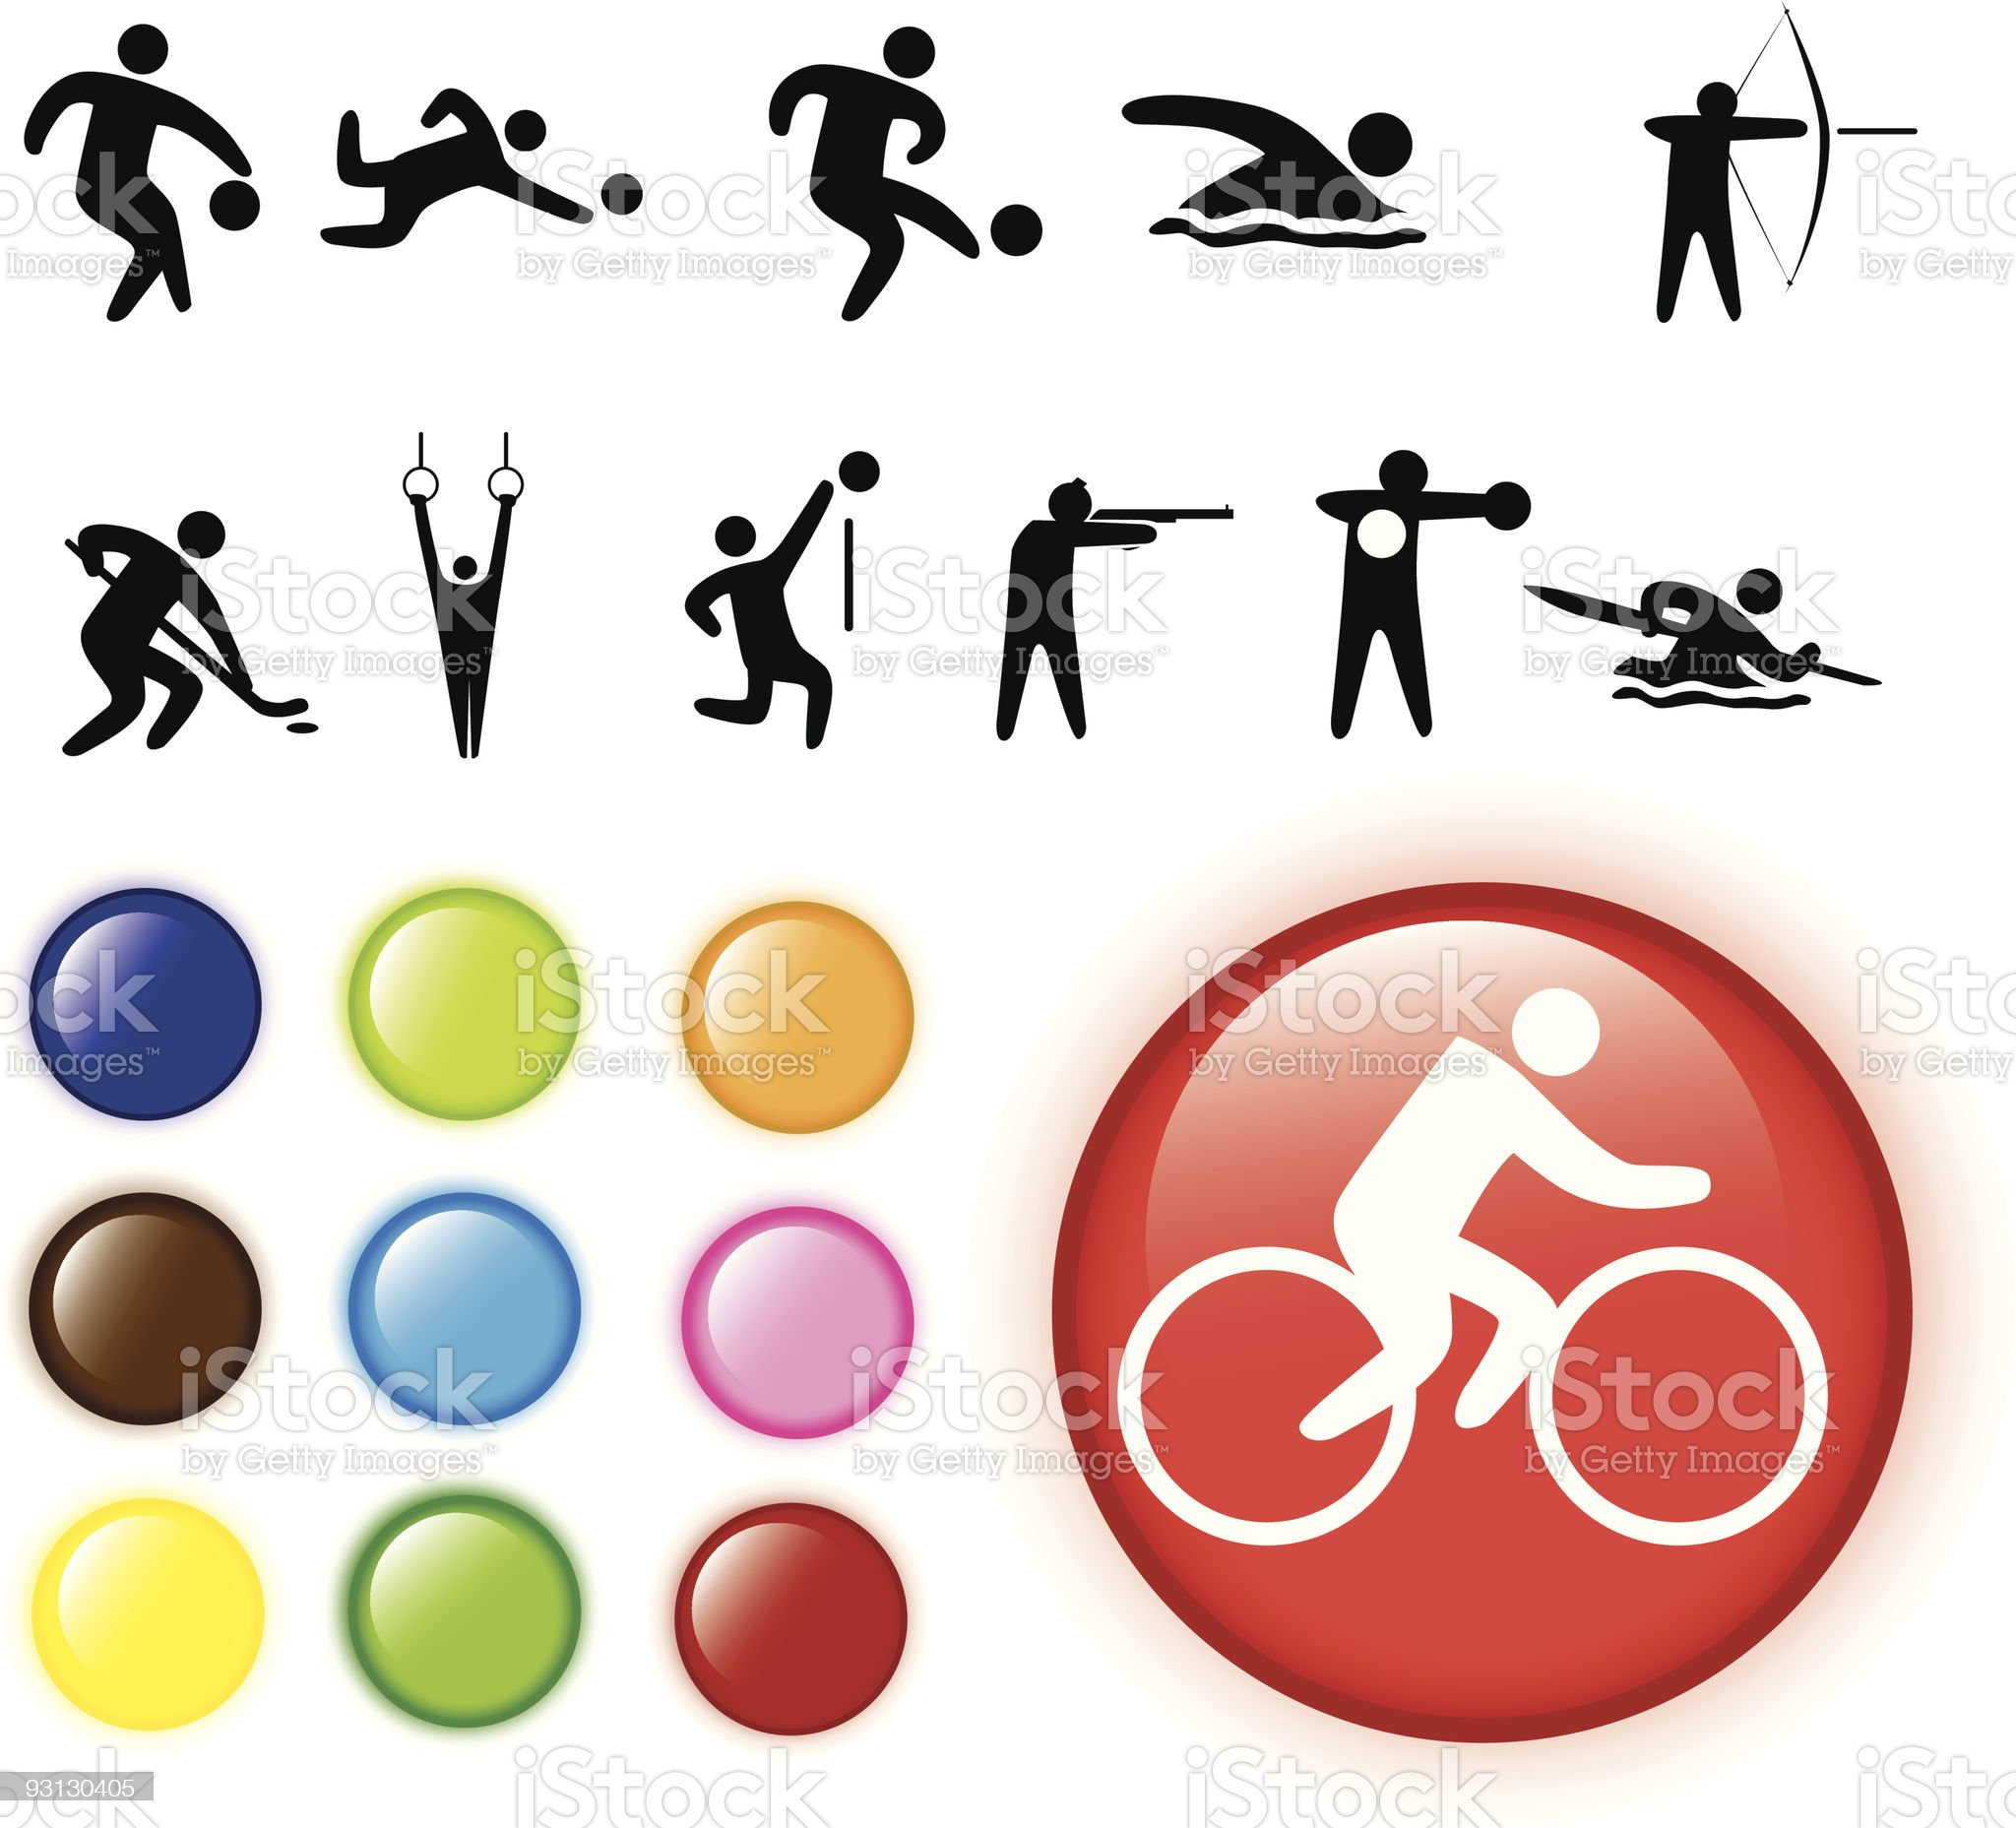 Set of coloured buttons and sport icons royalty-free stock vector art